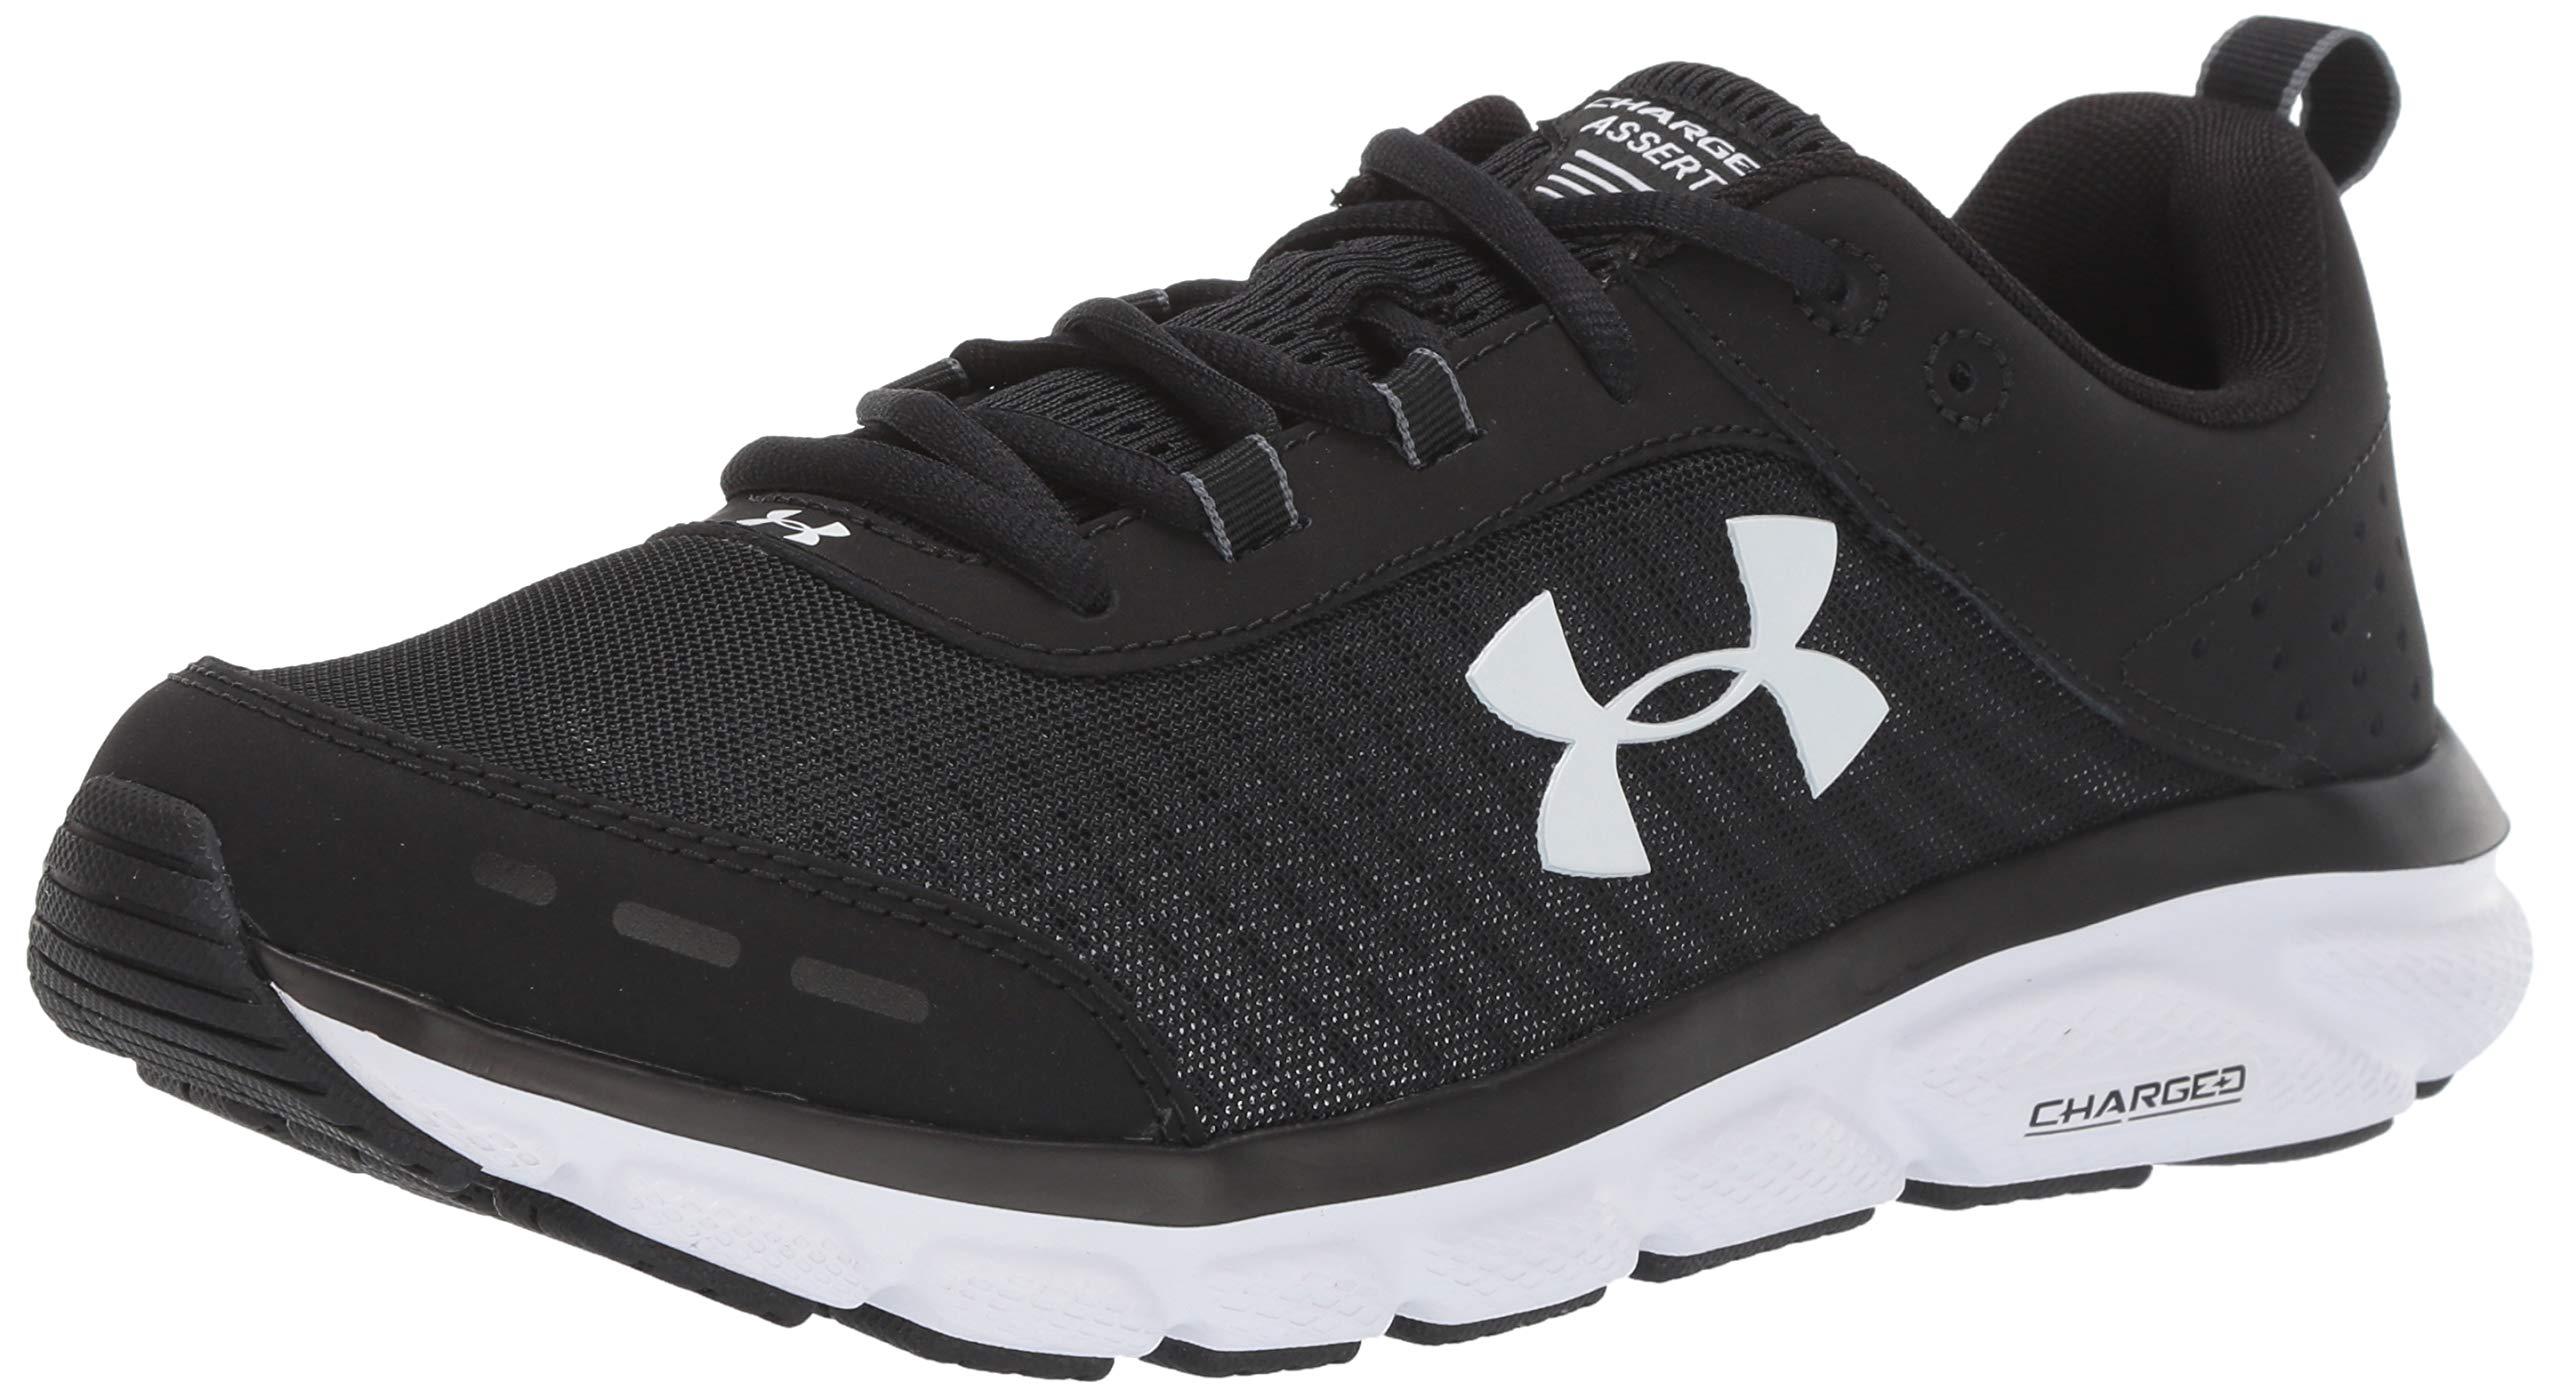 Under Armour Men's Charged Assert 8 Running Shoe, Black (001)/White, 10.5 by Under Armour